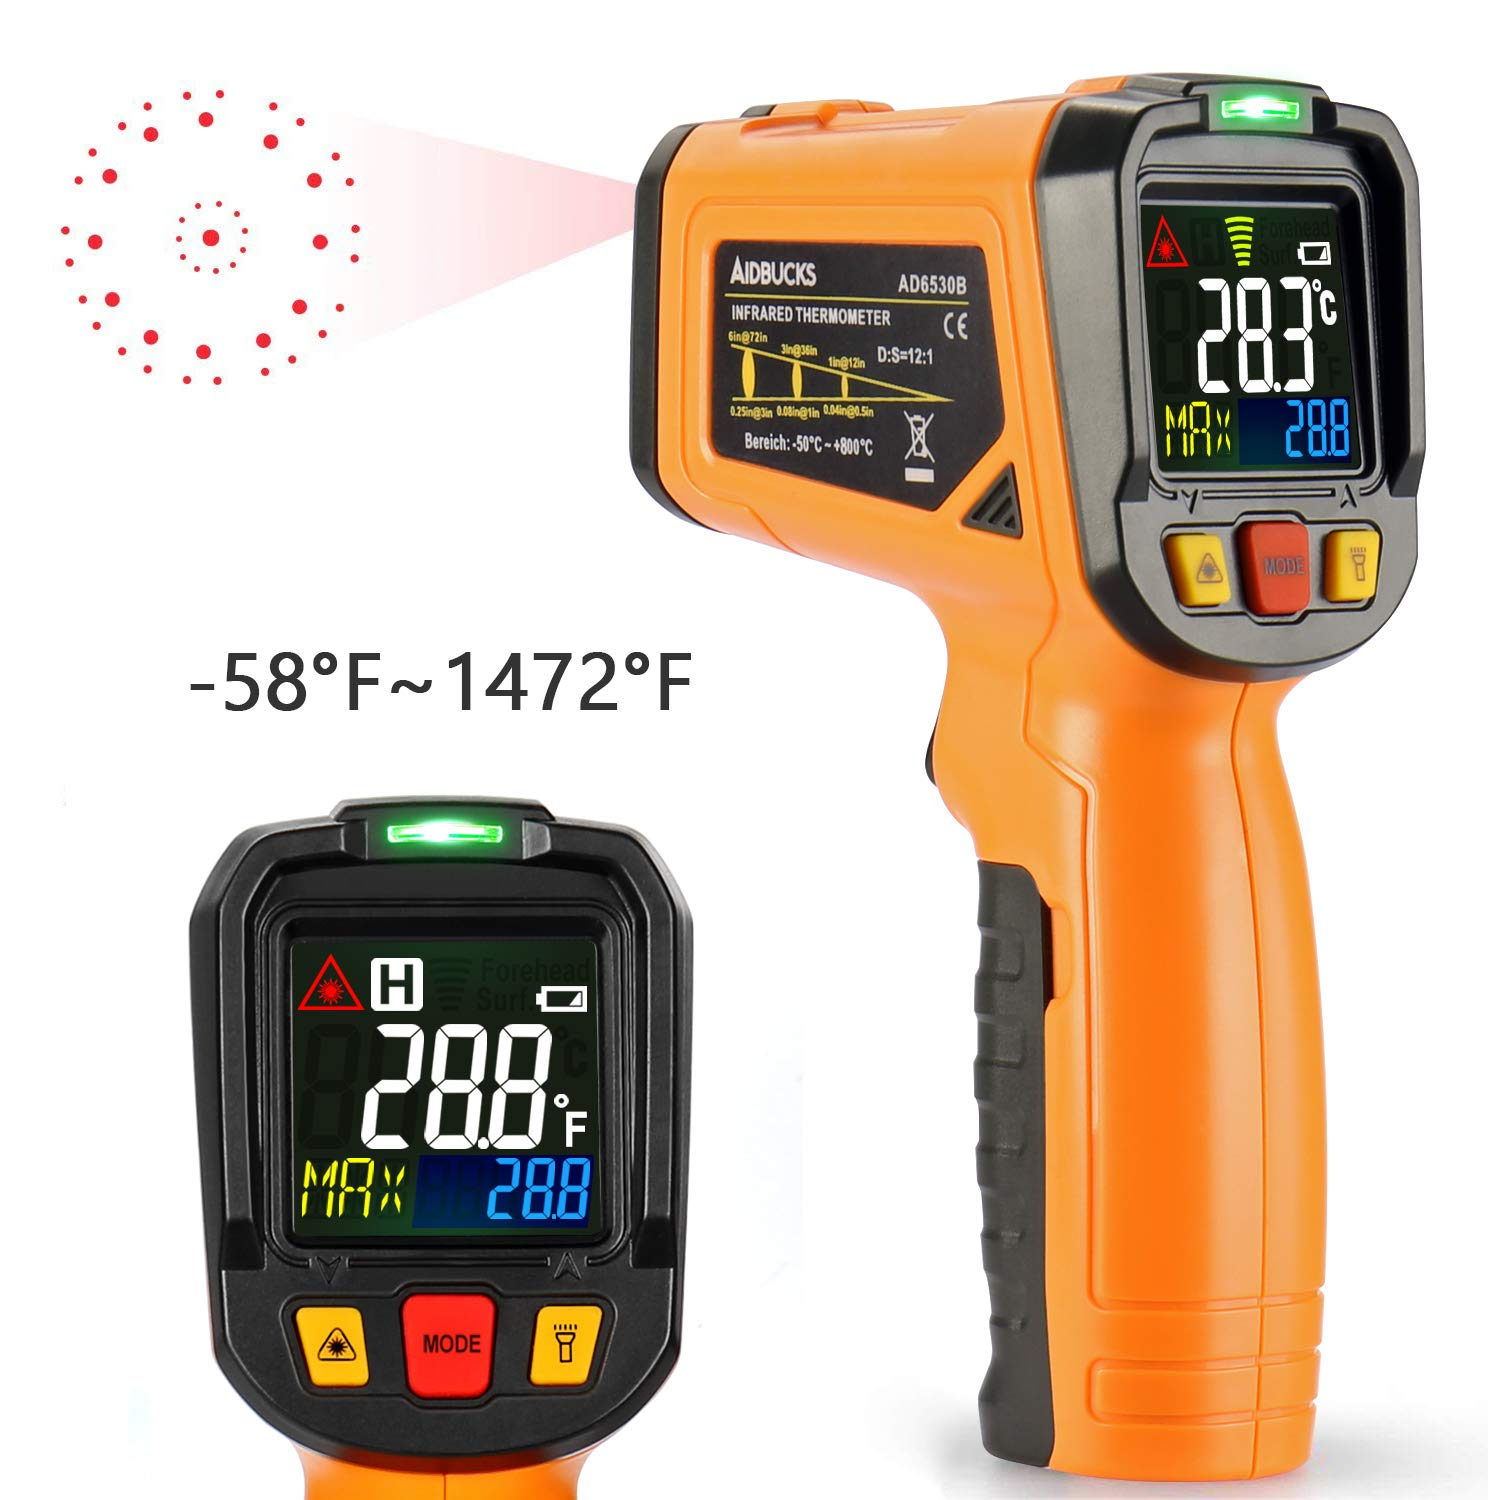 Infrared Thermometer AIDBUCKS AD6530B Digital Laser Non Contact Cooking IR Temperature Gun -58°F to 1472°F with Color Display 12 Points Aperture for Kitchen Food Meat BBQ Automotive and Industrial by AIDBUCKS